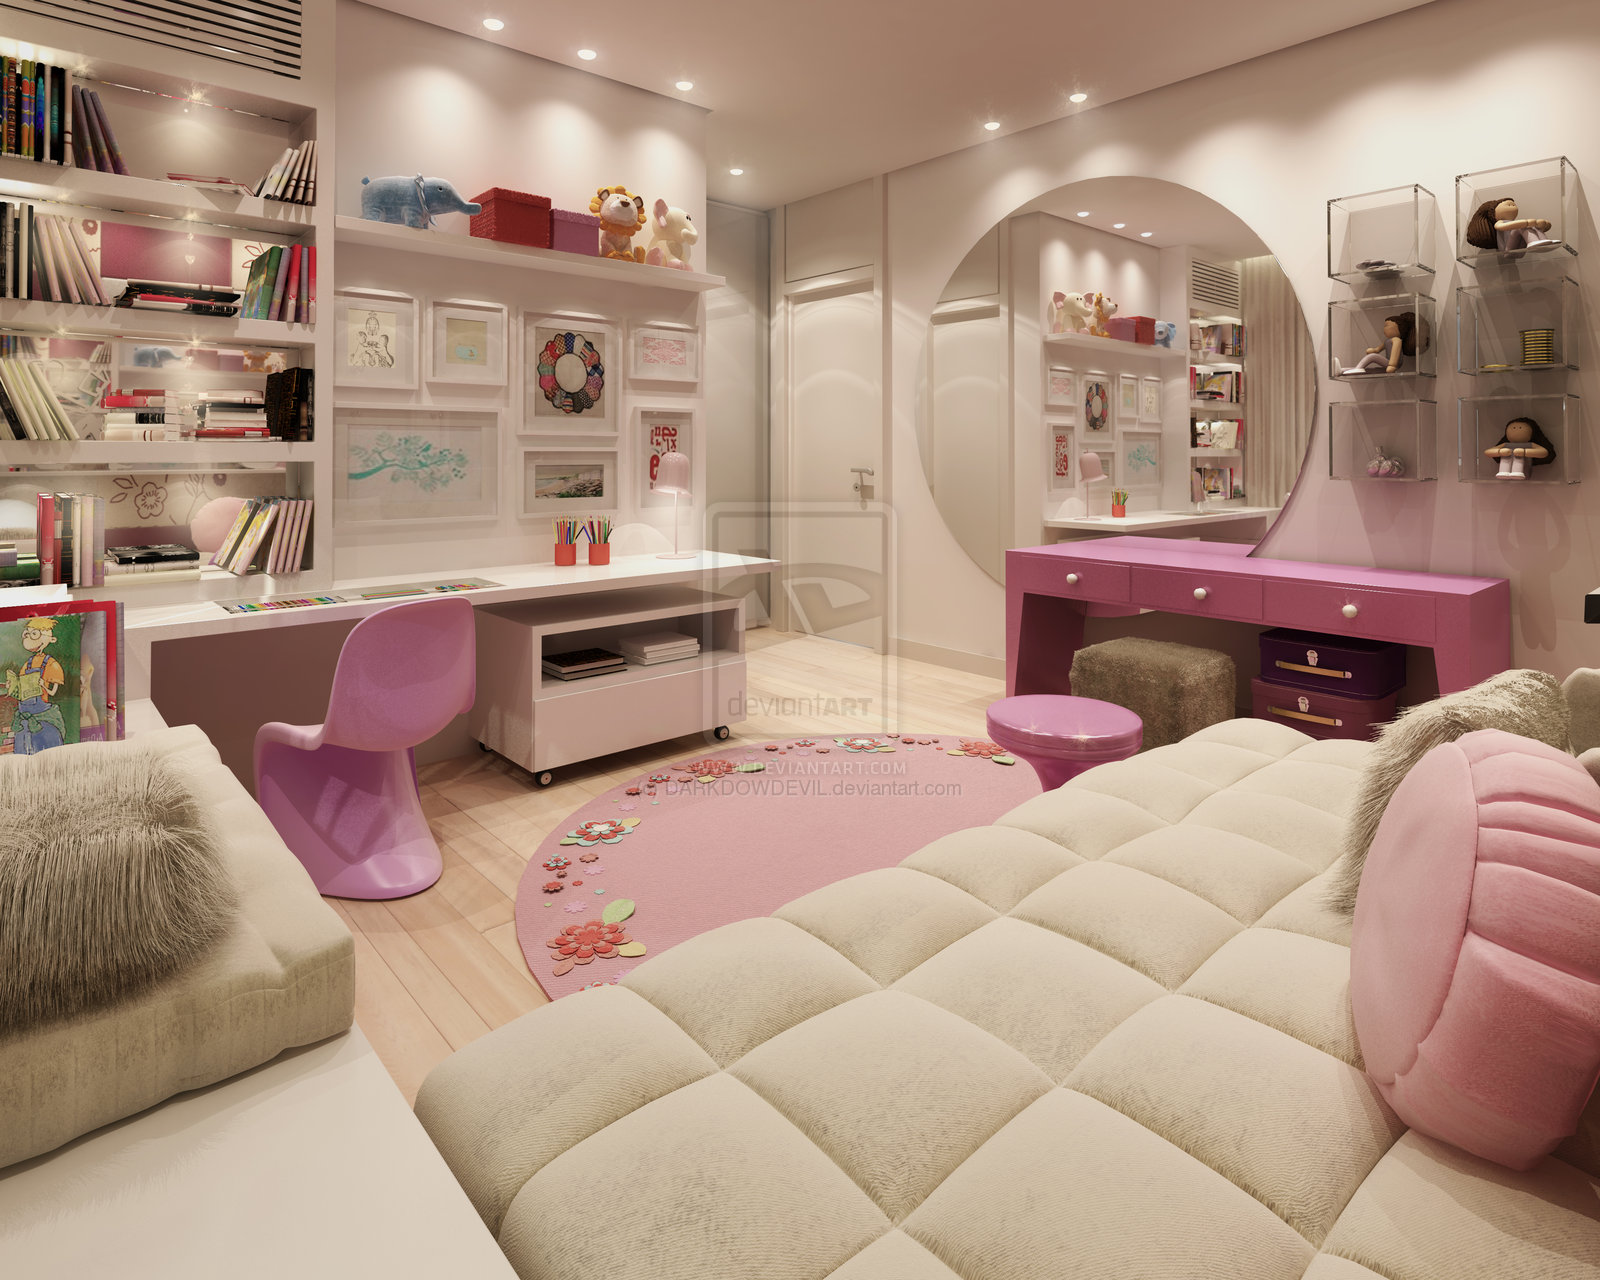 Adorable Kids Room Designs Which Present A Modern And Trendy Decor Ideas Looks So Awesome Roohome